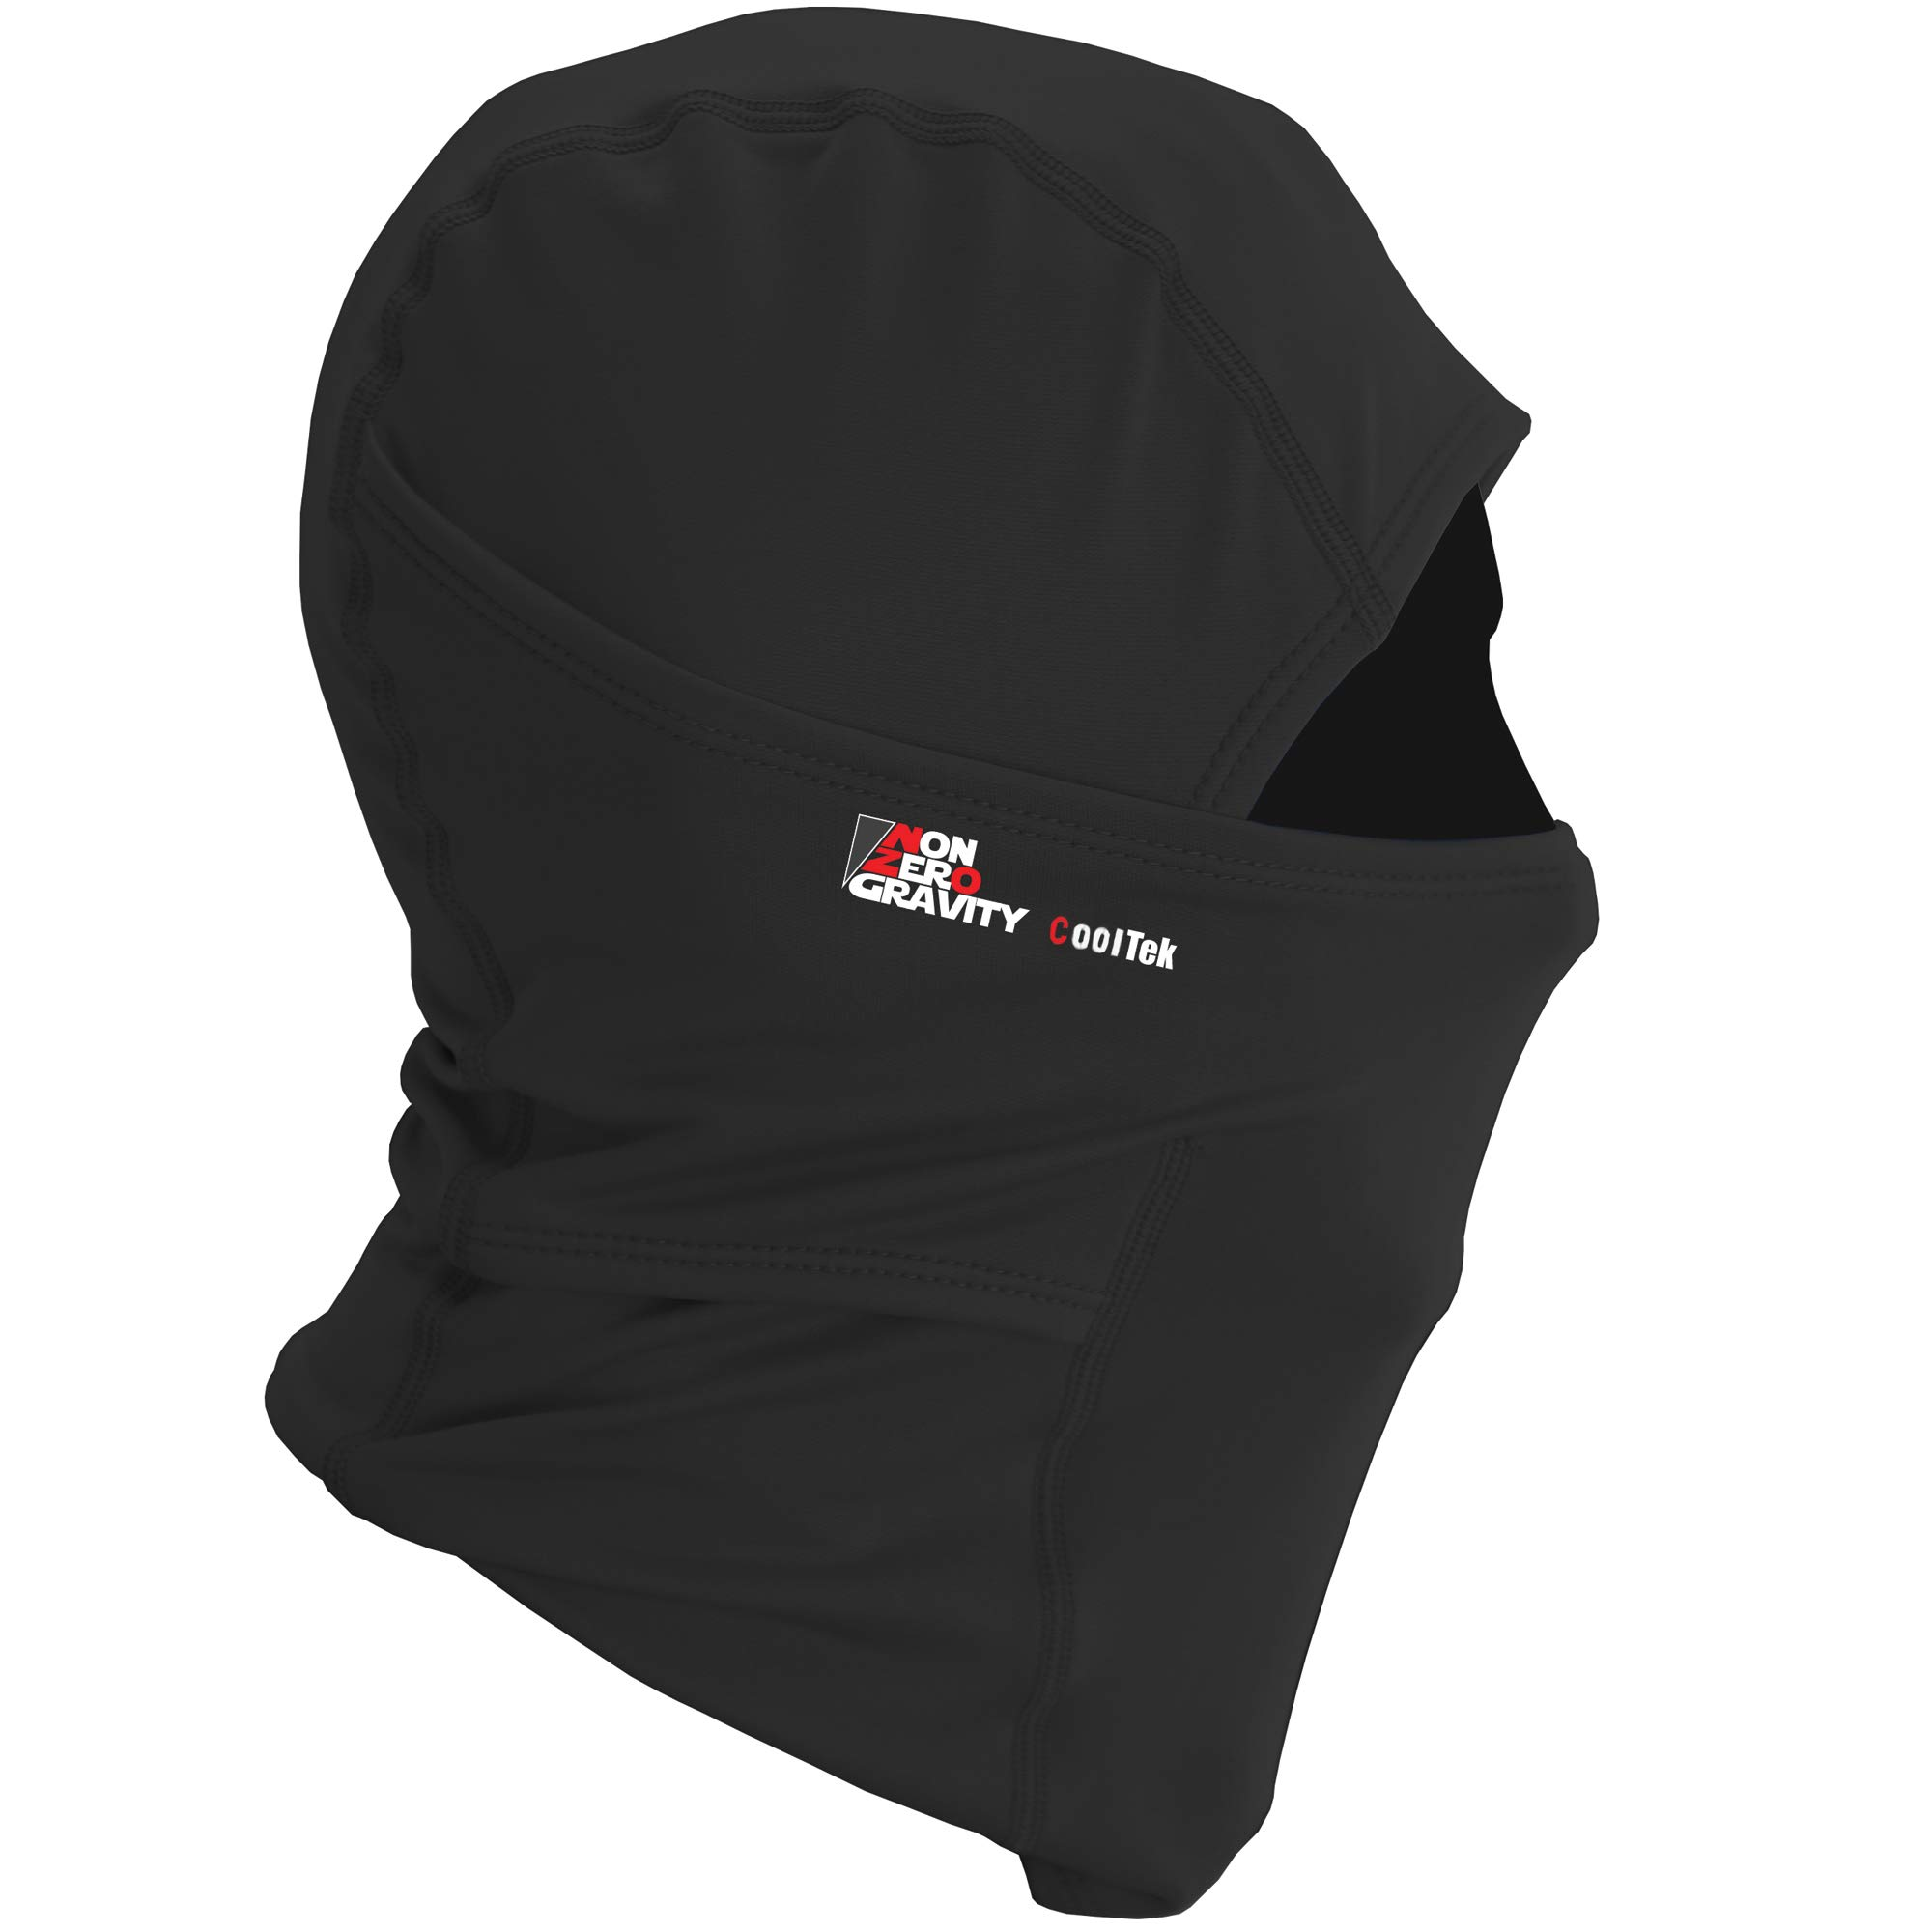 NonZero Gravity Cooling Hood | Tactical Hoodie, Head Wrap And Neck Scarf For Cycling, Biking And Sports (Tactical, Black)